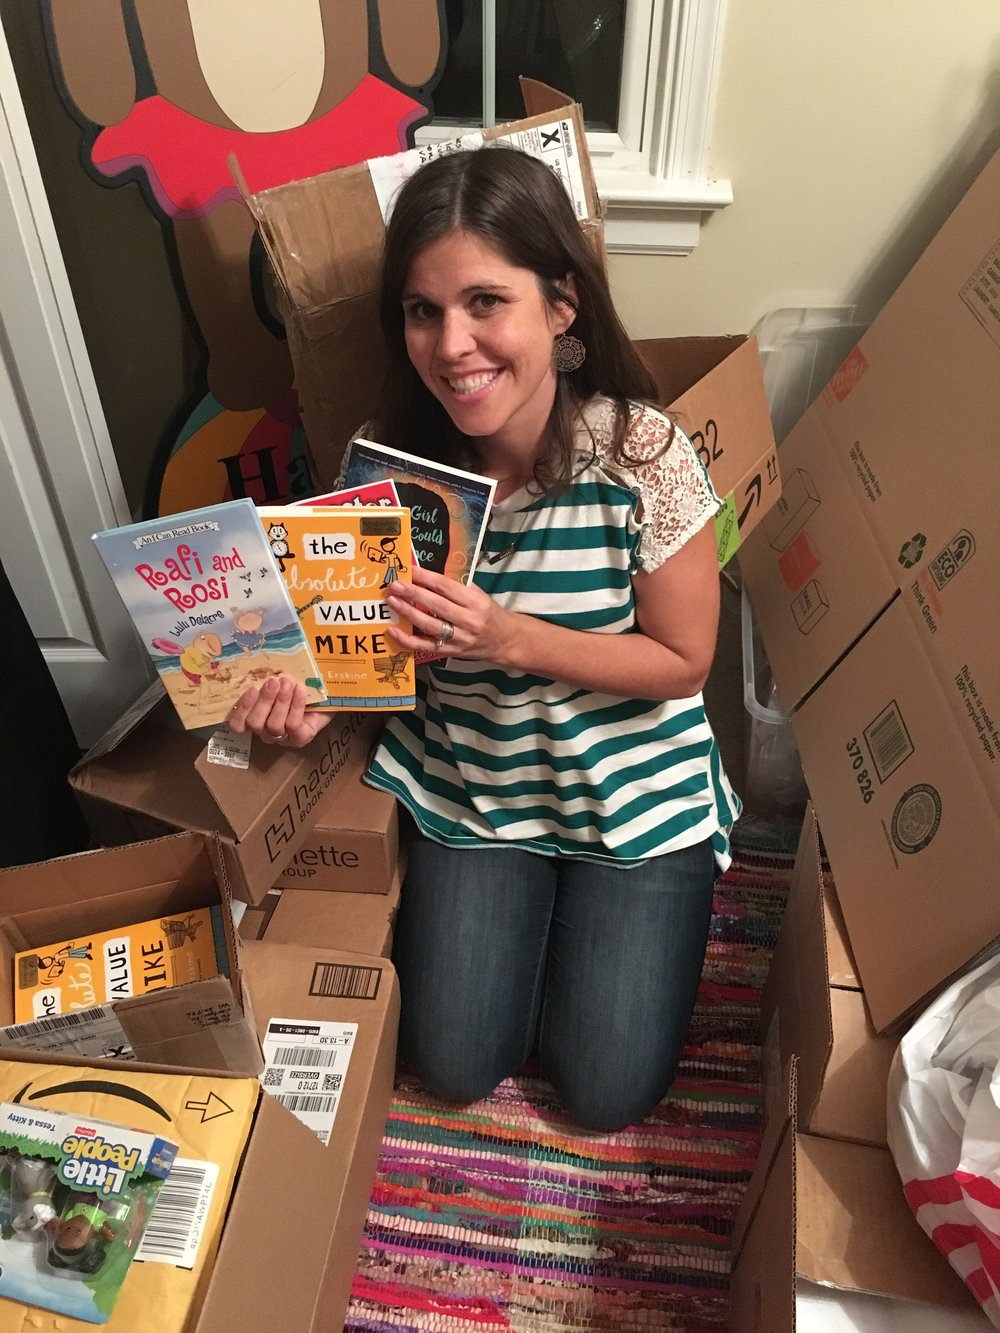 Caroline Neal, Founder of Worthdays, amongst the many boxes of generous donations of books.